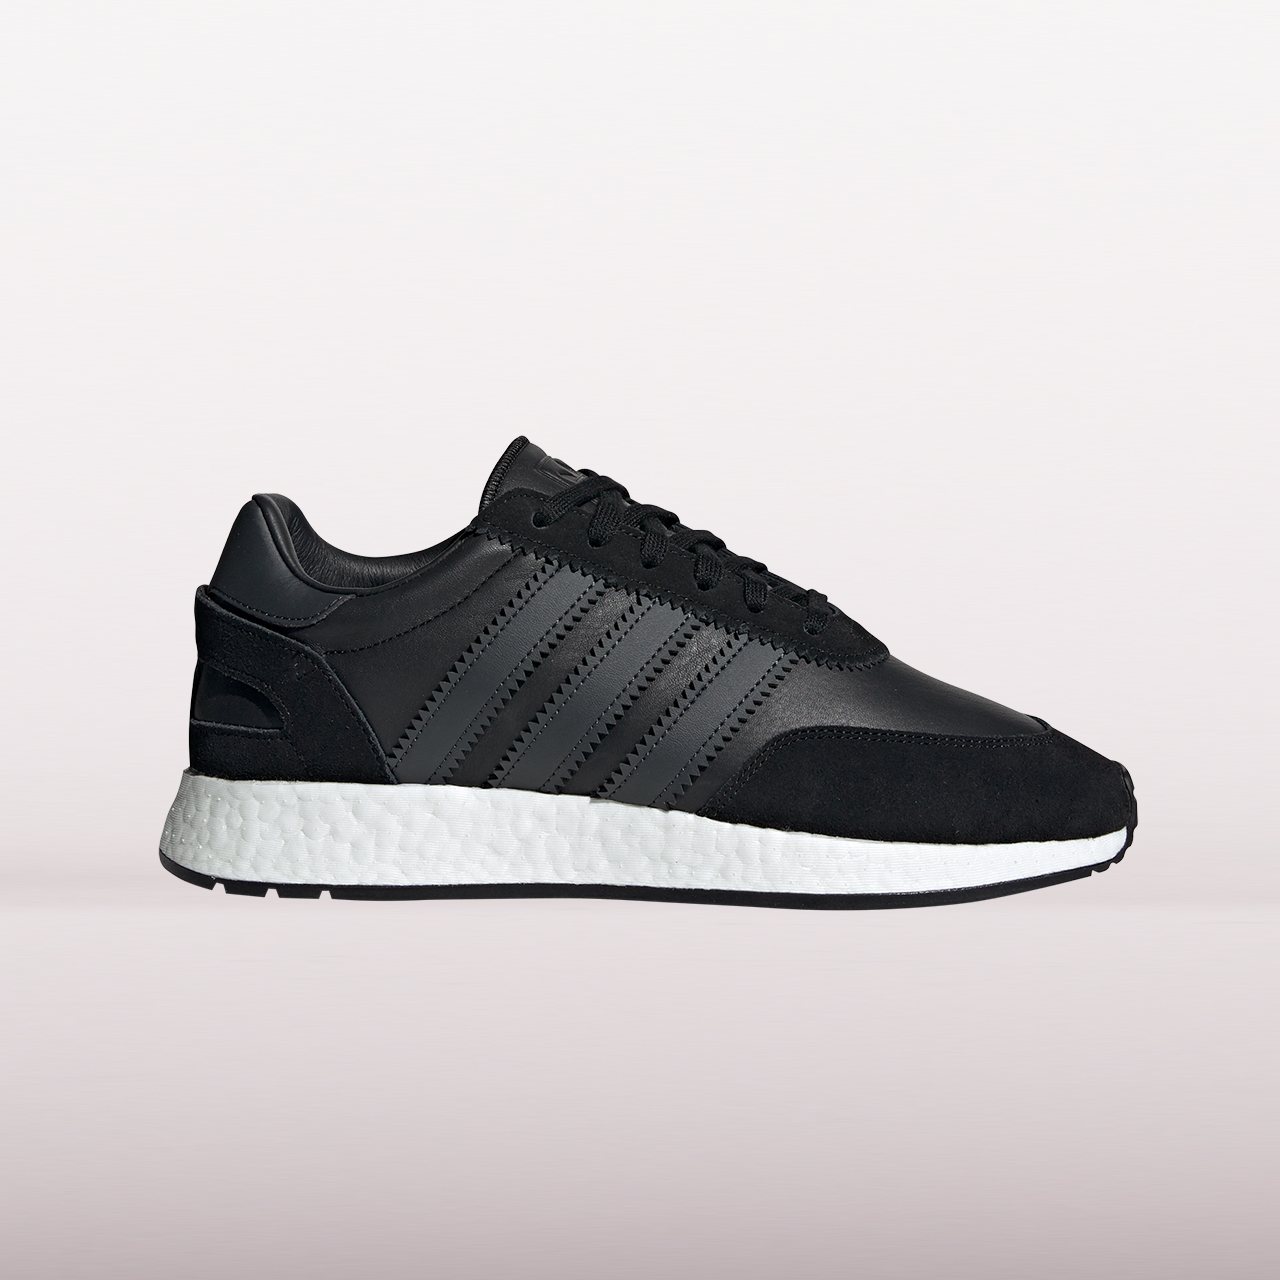 00614e7d286 Home / New Arrivals / ADIDAS I-5923 Sneakers Heren